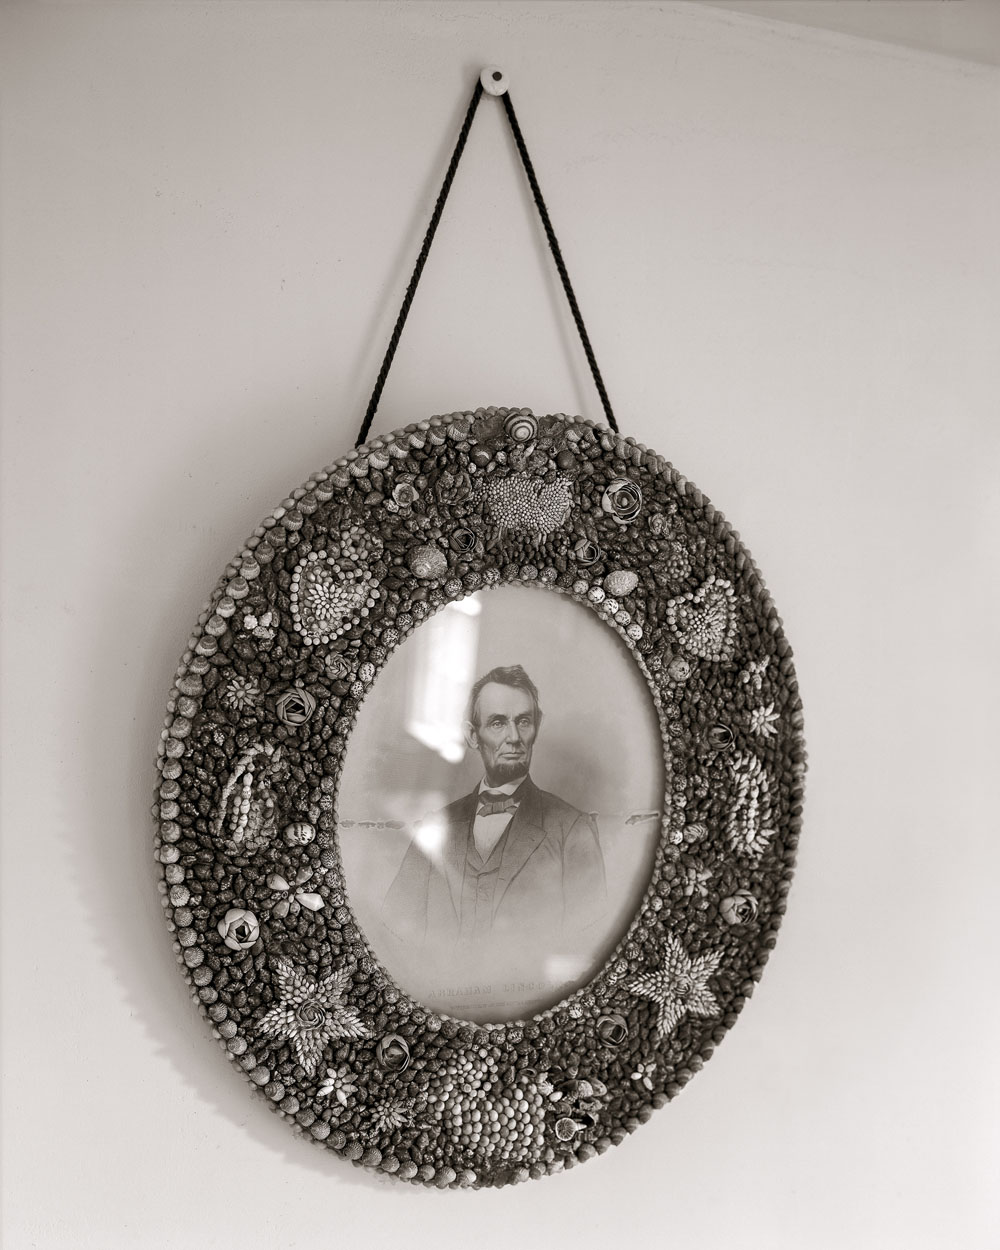 Linda Connor, Lincoln in Shell Frame, 2006